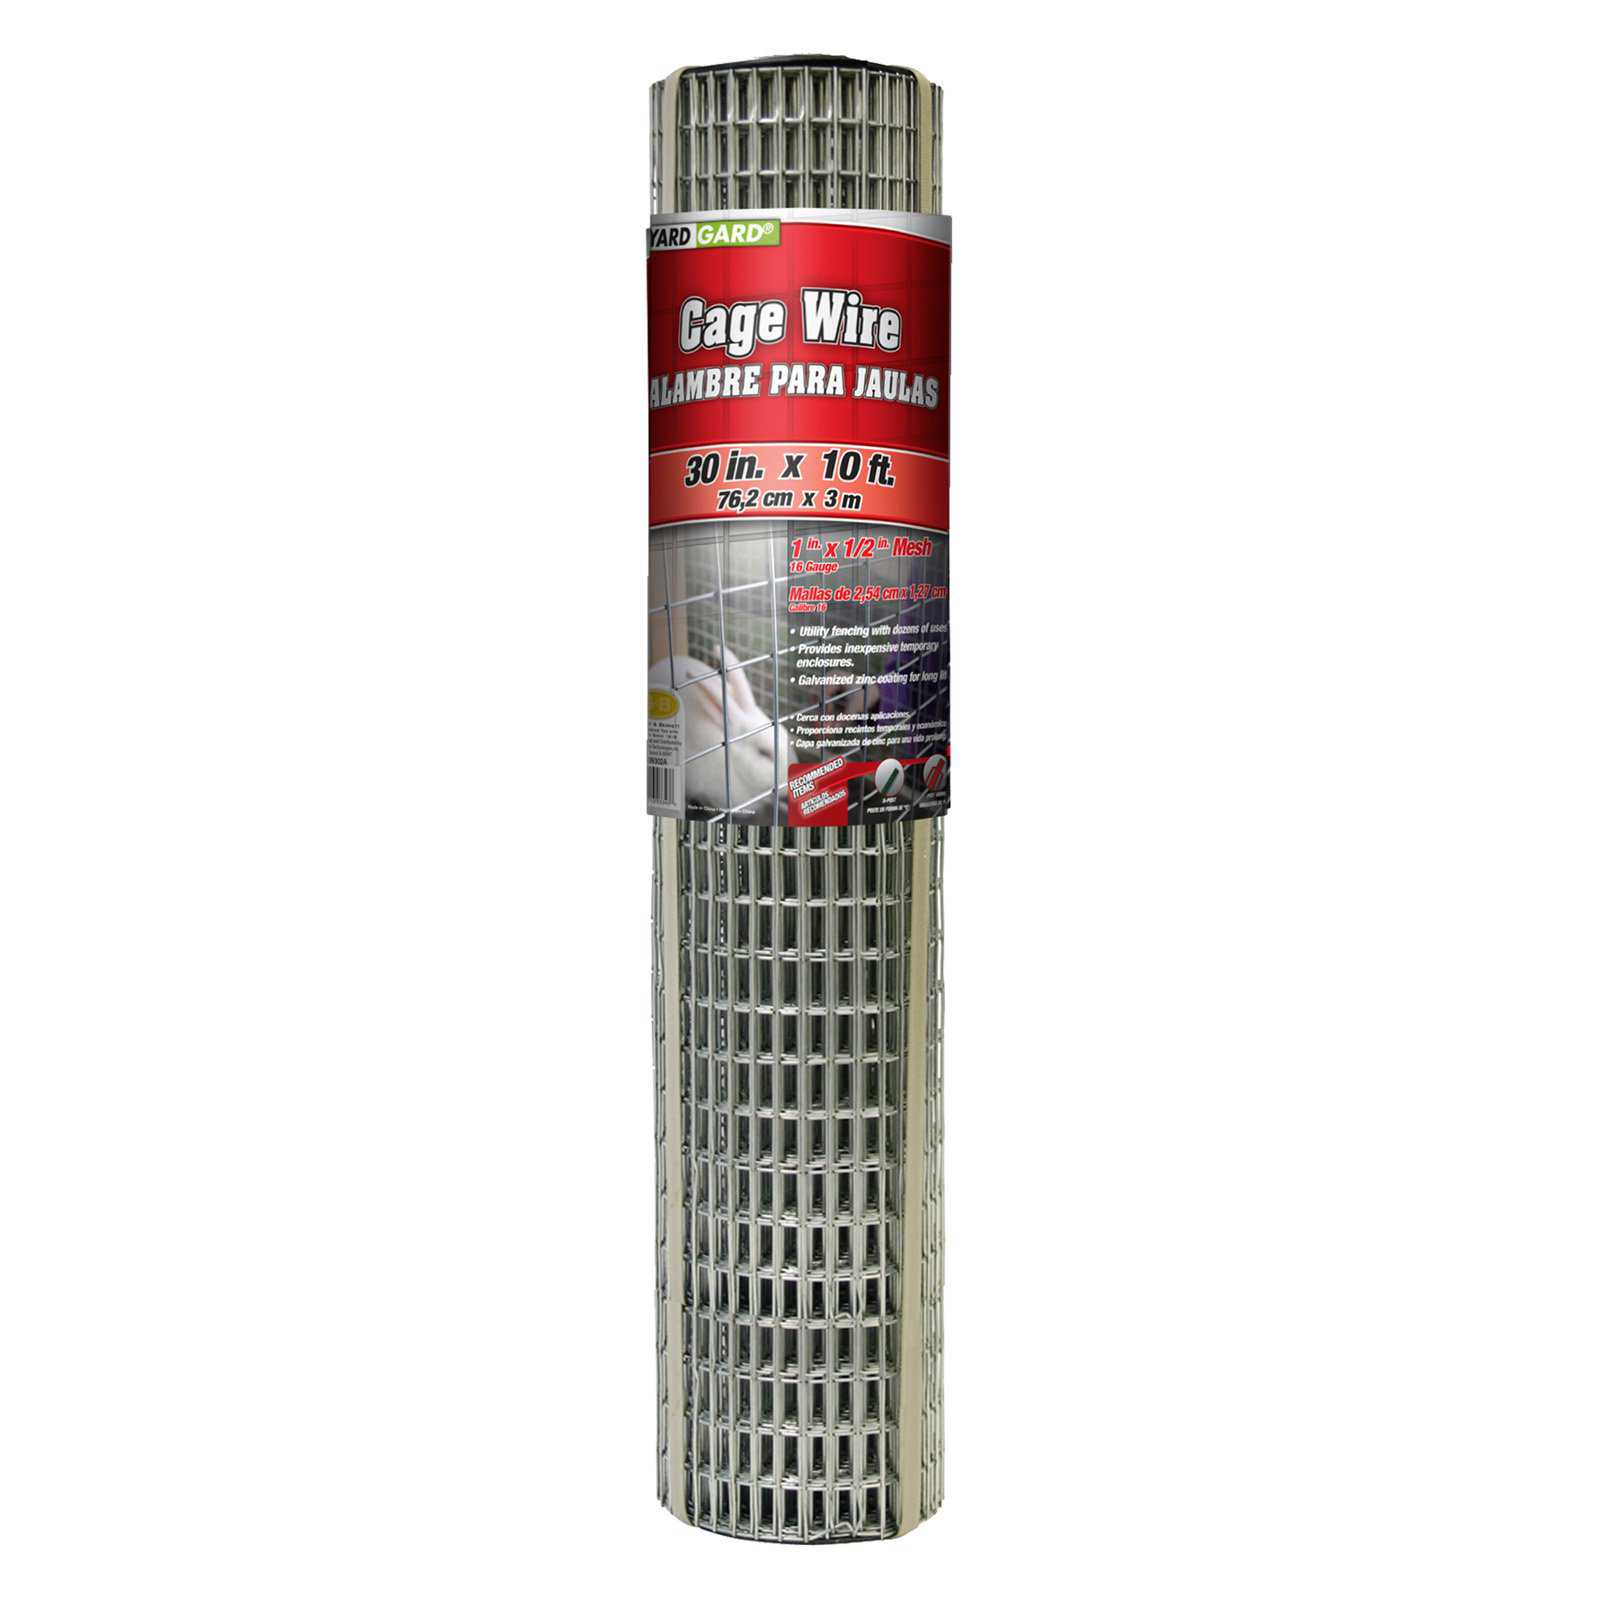 YARDGARD 30 inch by 10 foot 16 Gauge 1 inch by 1/2 inch Mesh Cage Wire